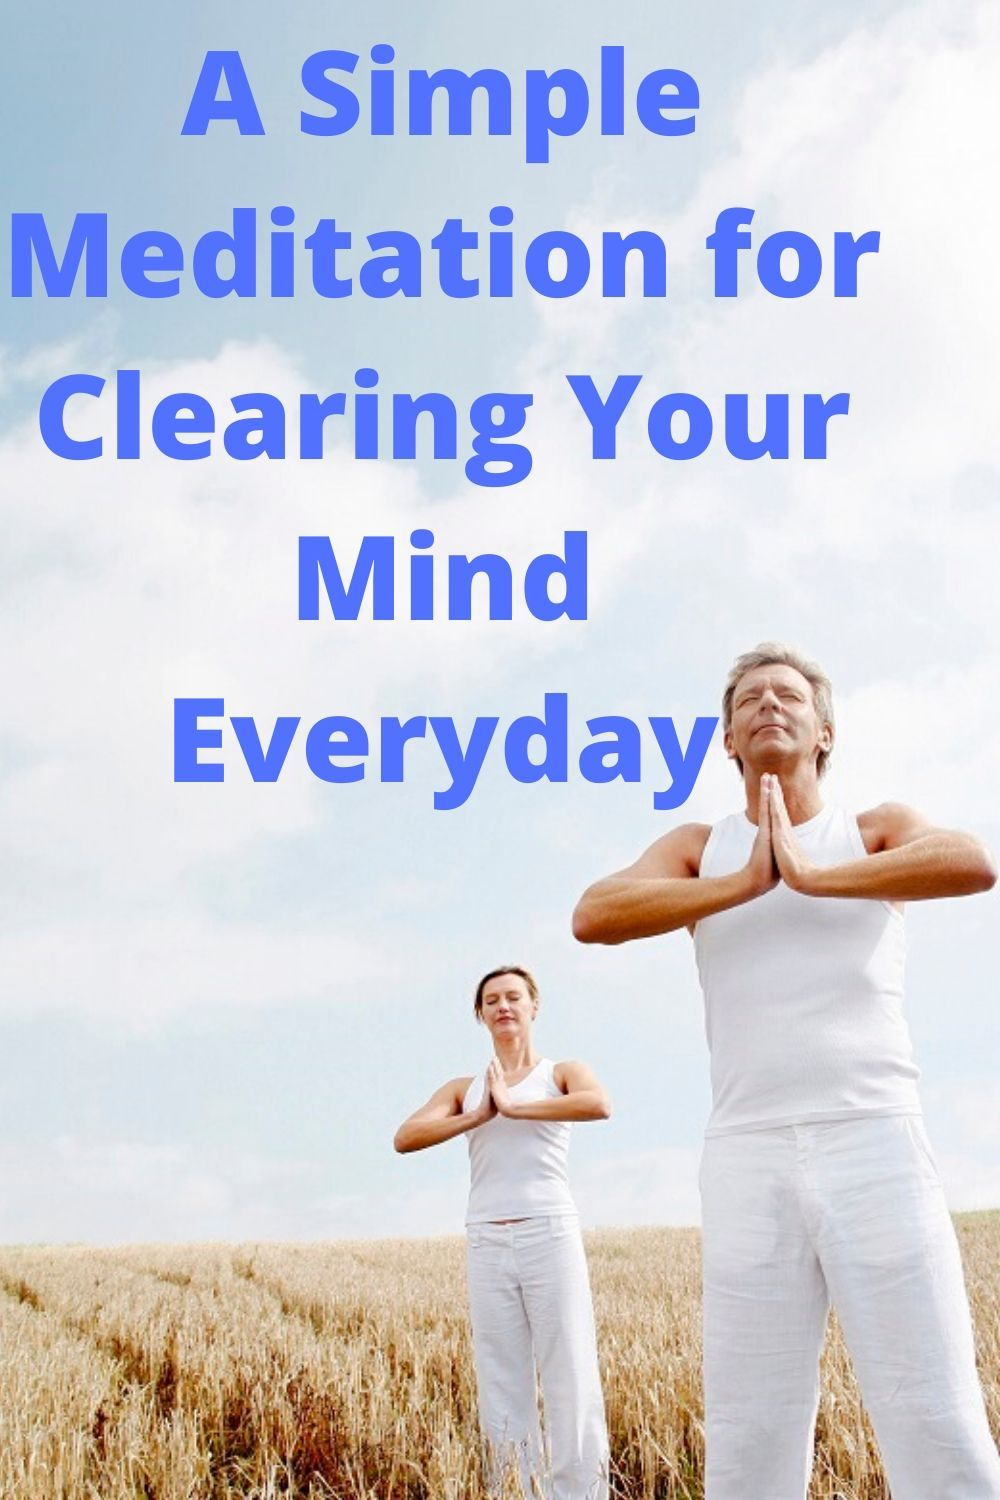 Meditation helps us to clear our mind so that we can make the right choices in life, in this post I have explained this in detail and I have also shared a quick simple meditation that anyone can use to clear the mental clutter. #meditation #inspireddecisionmethod #clearingyourmind #clearmind #spiritualworld #spirituality #innerpower #spiritualawakening